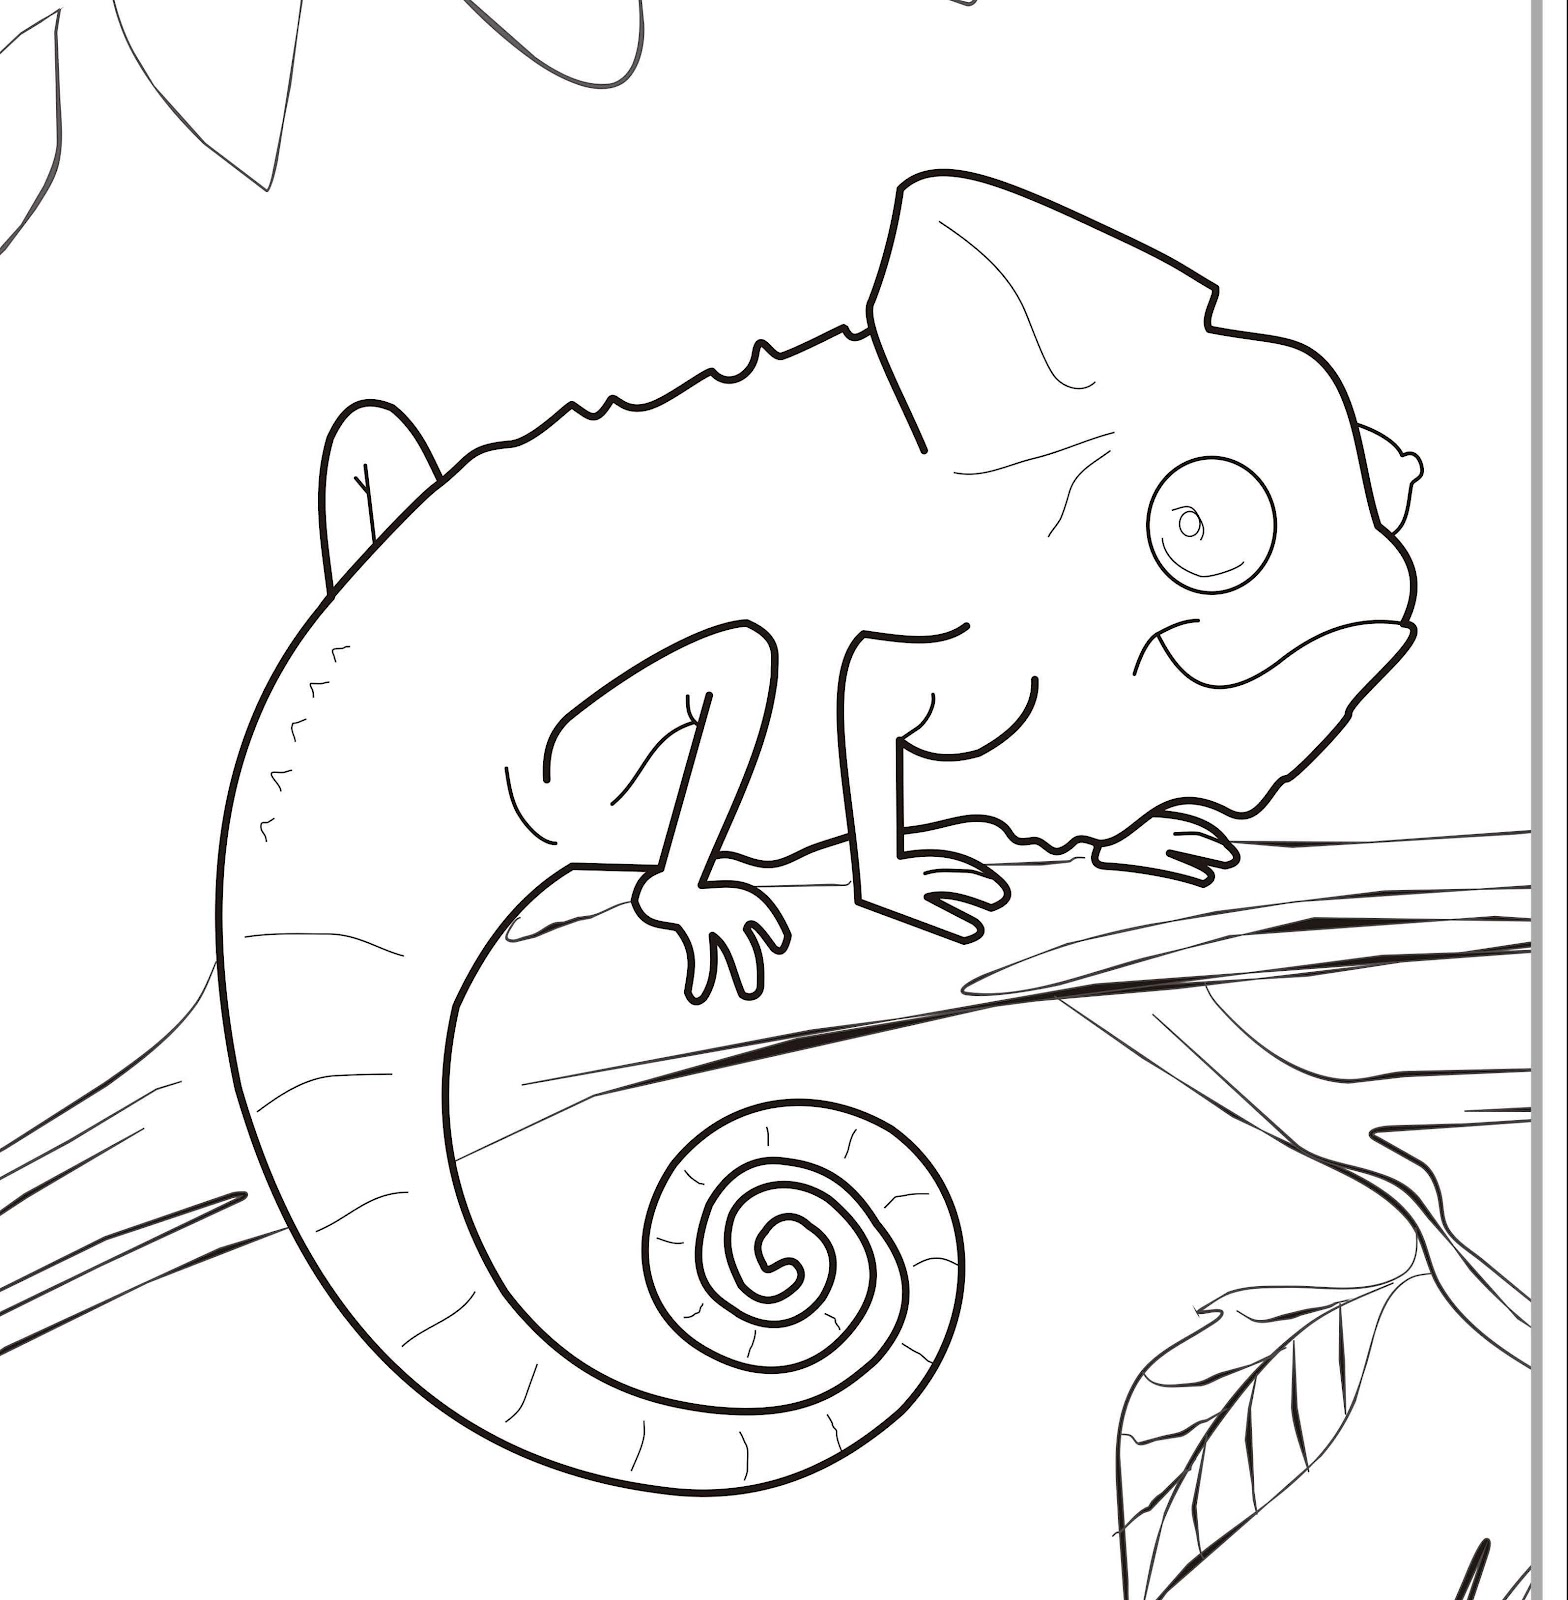 chameleon coloring pages - photo#4